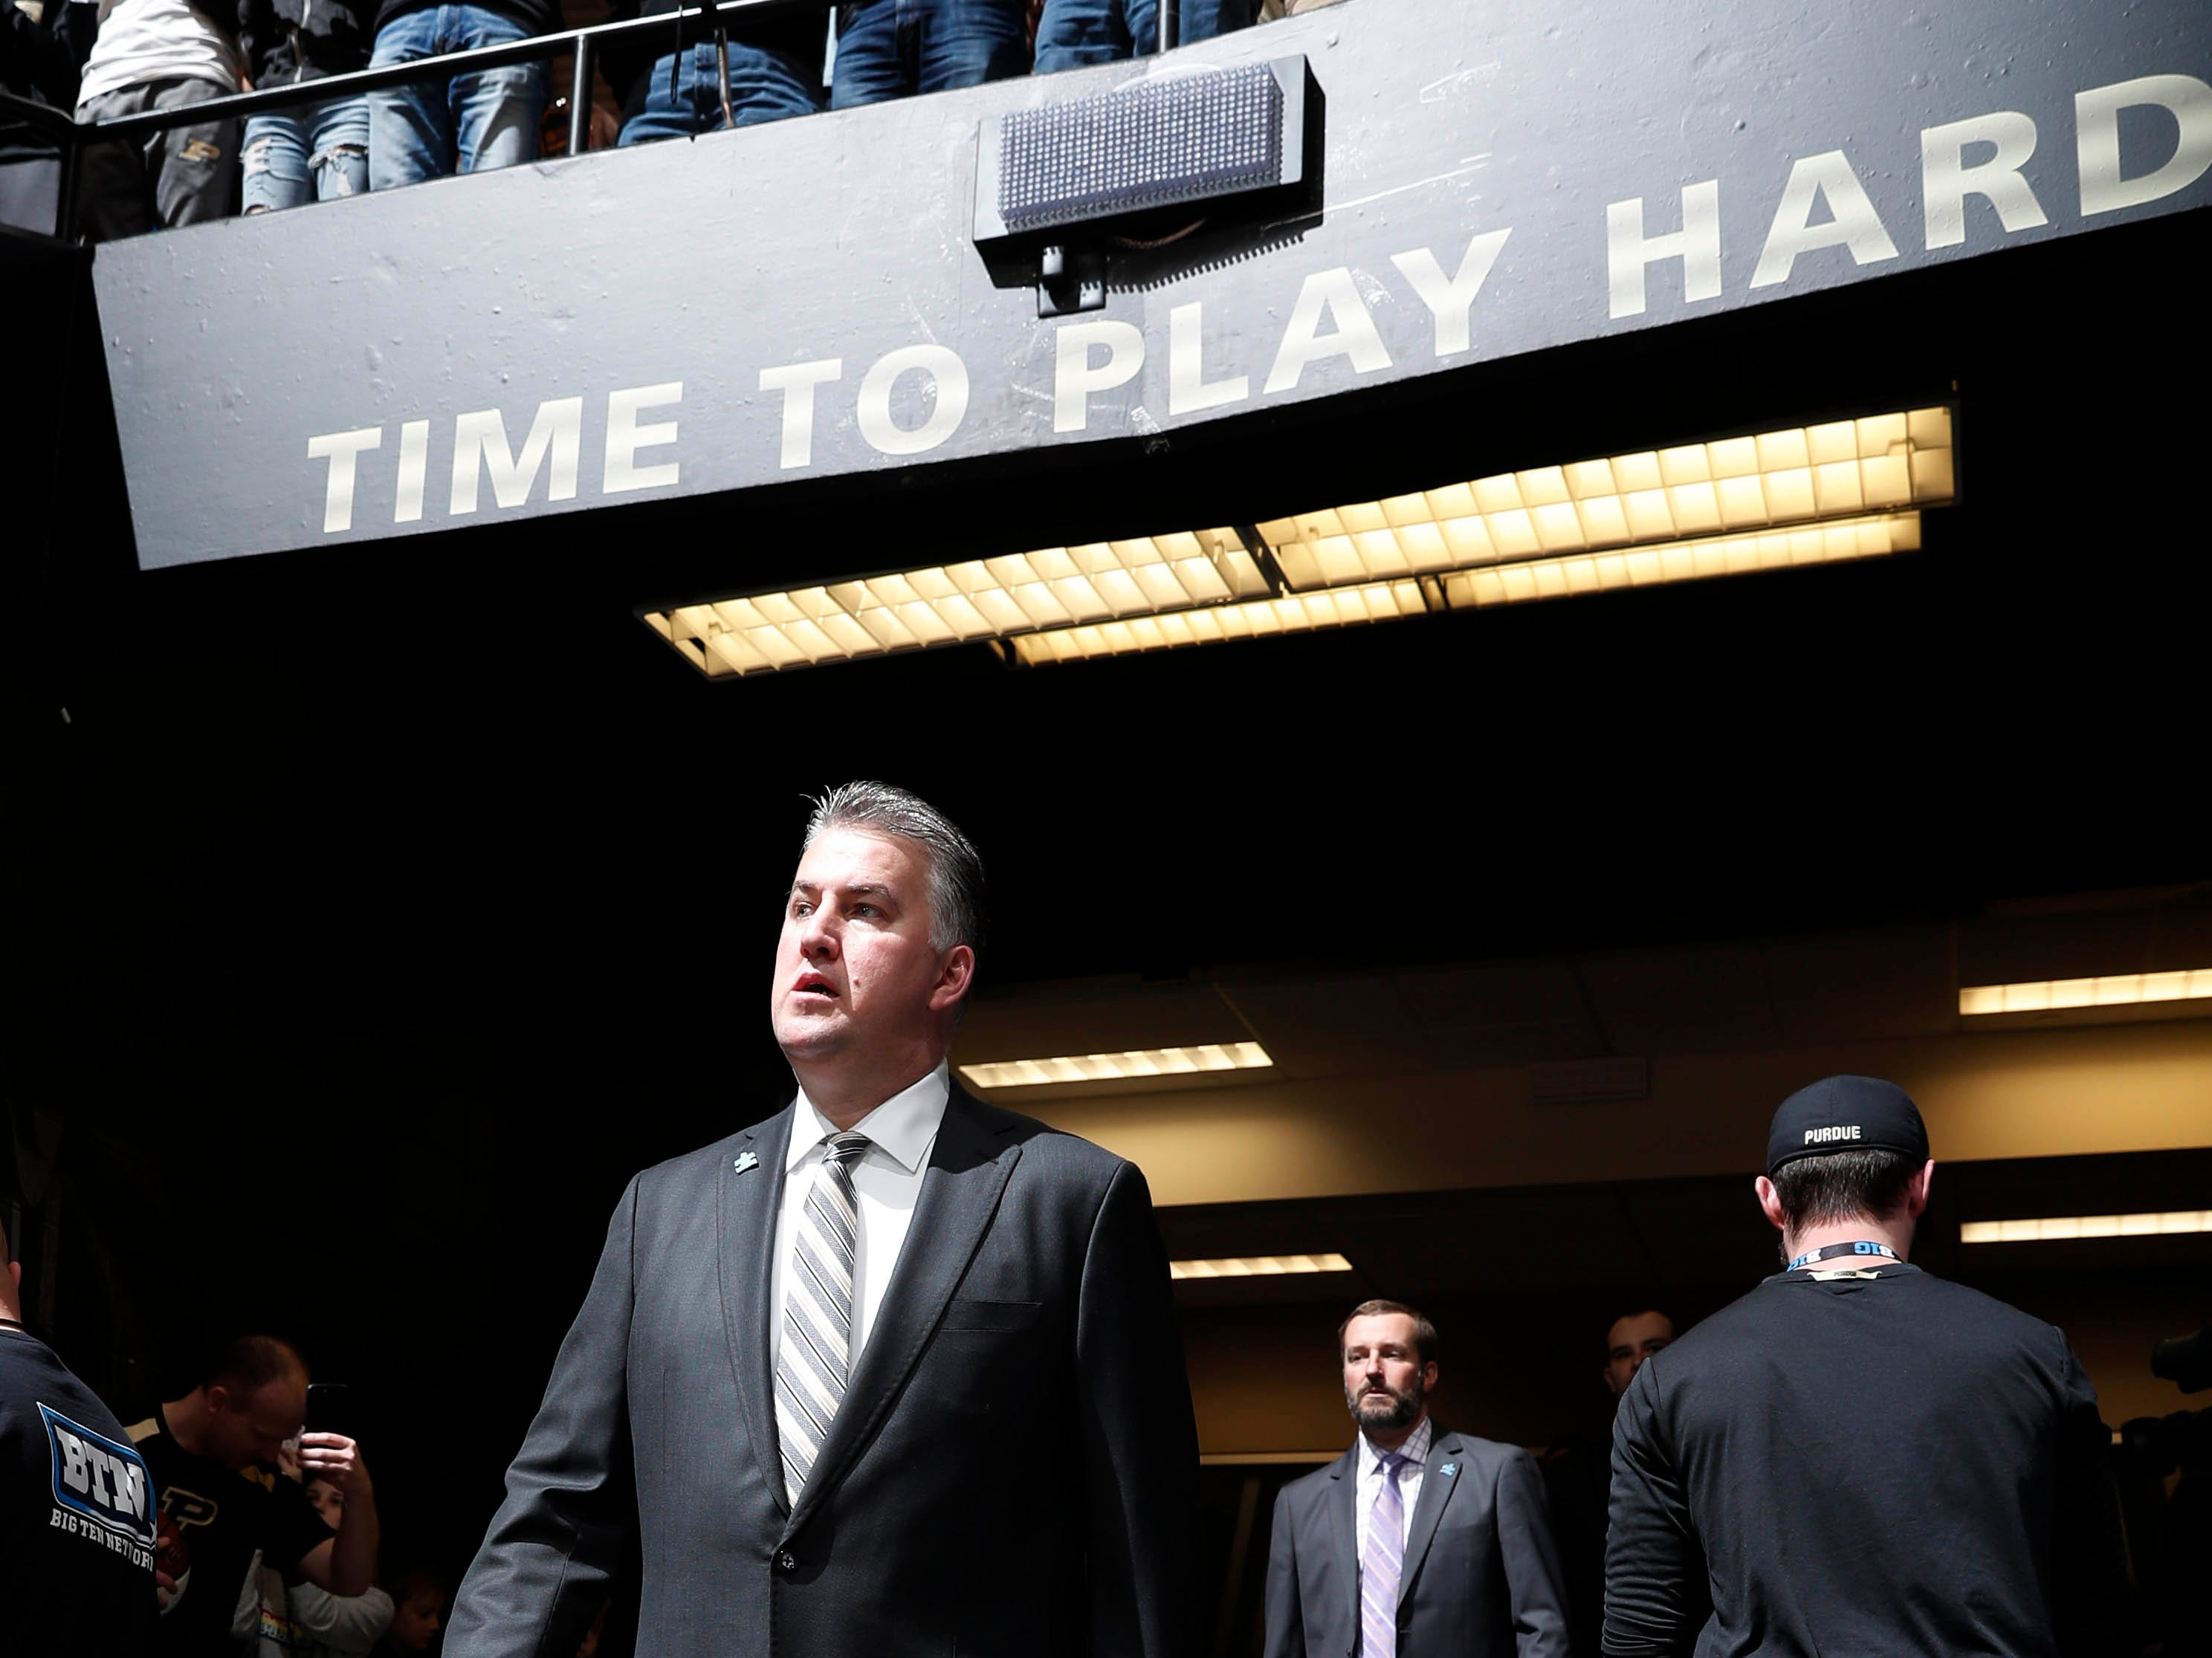 Purdue Boilermakers coach Matt Painter walks through the tunnel to the playing floor before the game against the Penn State Nittany Lions at Mackey Arena.